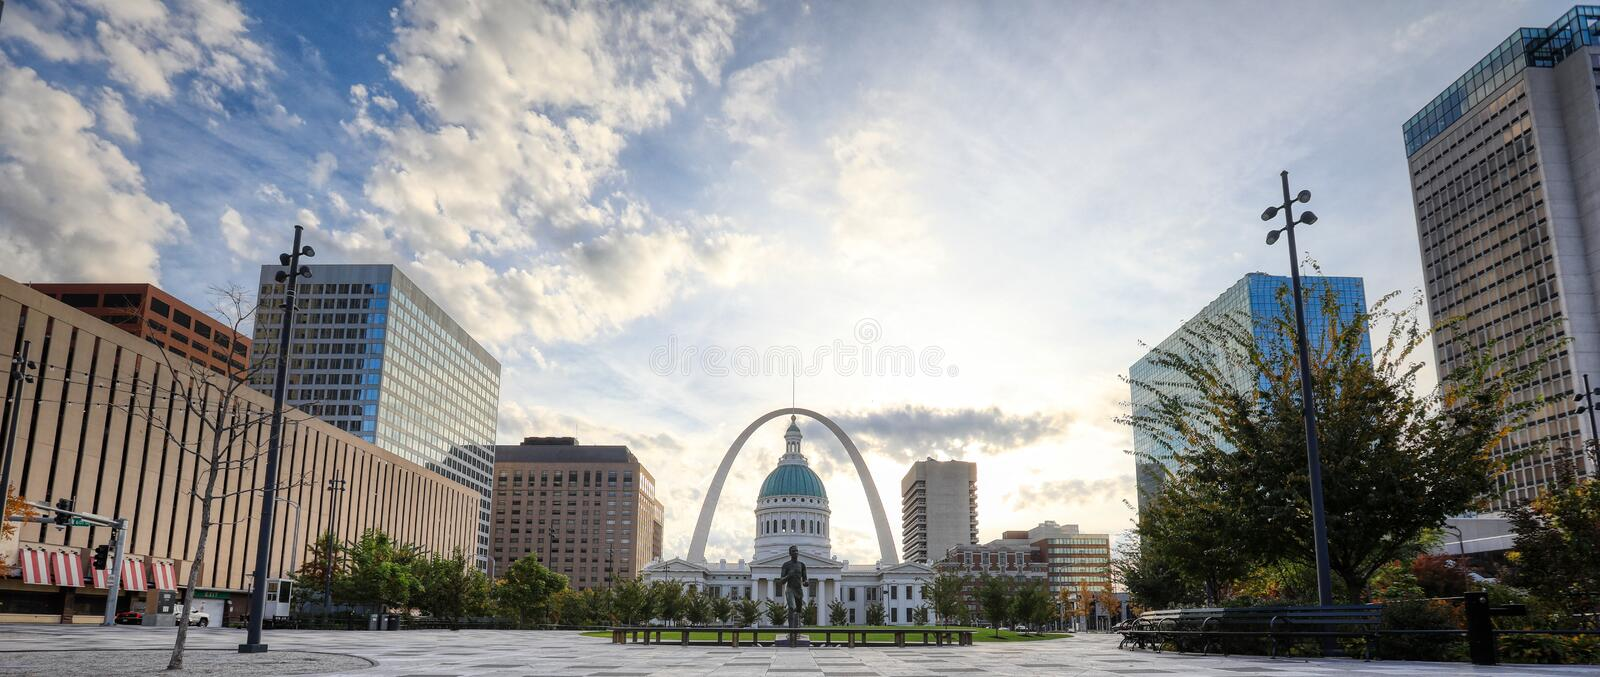 Kiener Plaza and the Gateway Arch in St. Louis, Missouri. October 30, 2018 - St. Louis, Missouri - Kiener Plaza and the Gateway Arch in St. Louis, Missouri royalty free stock photo